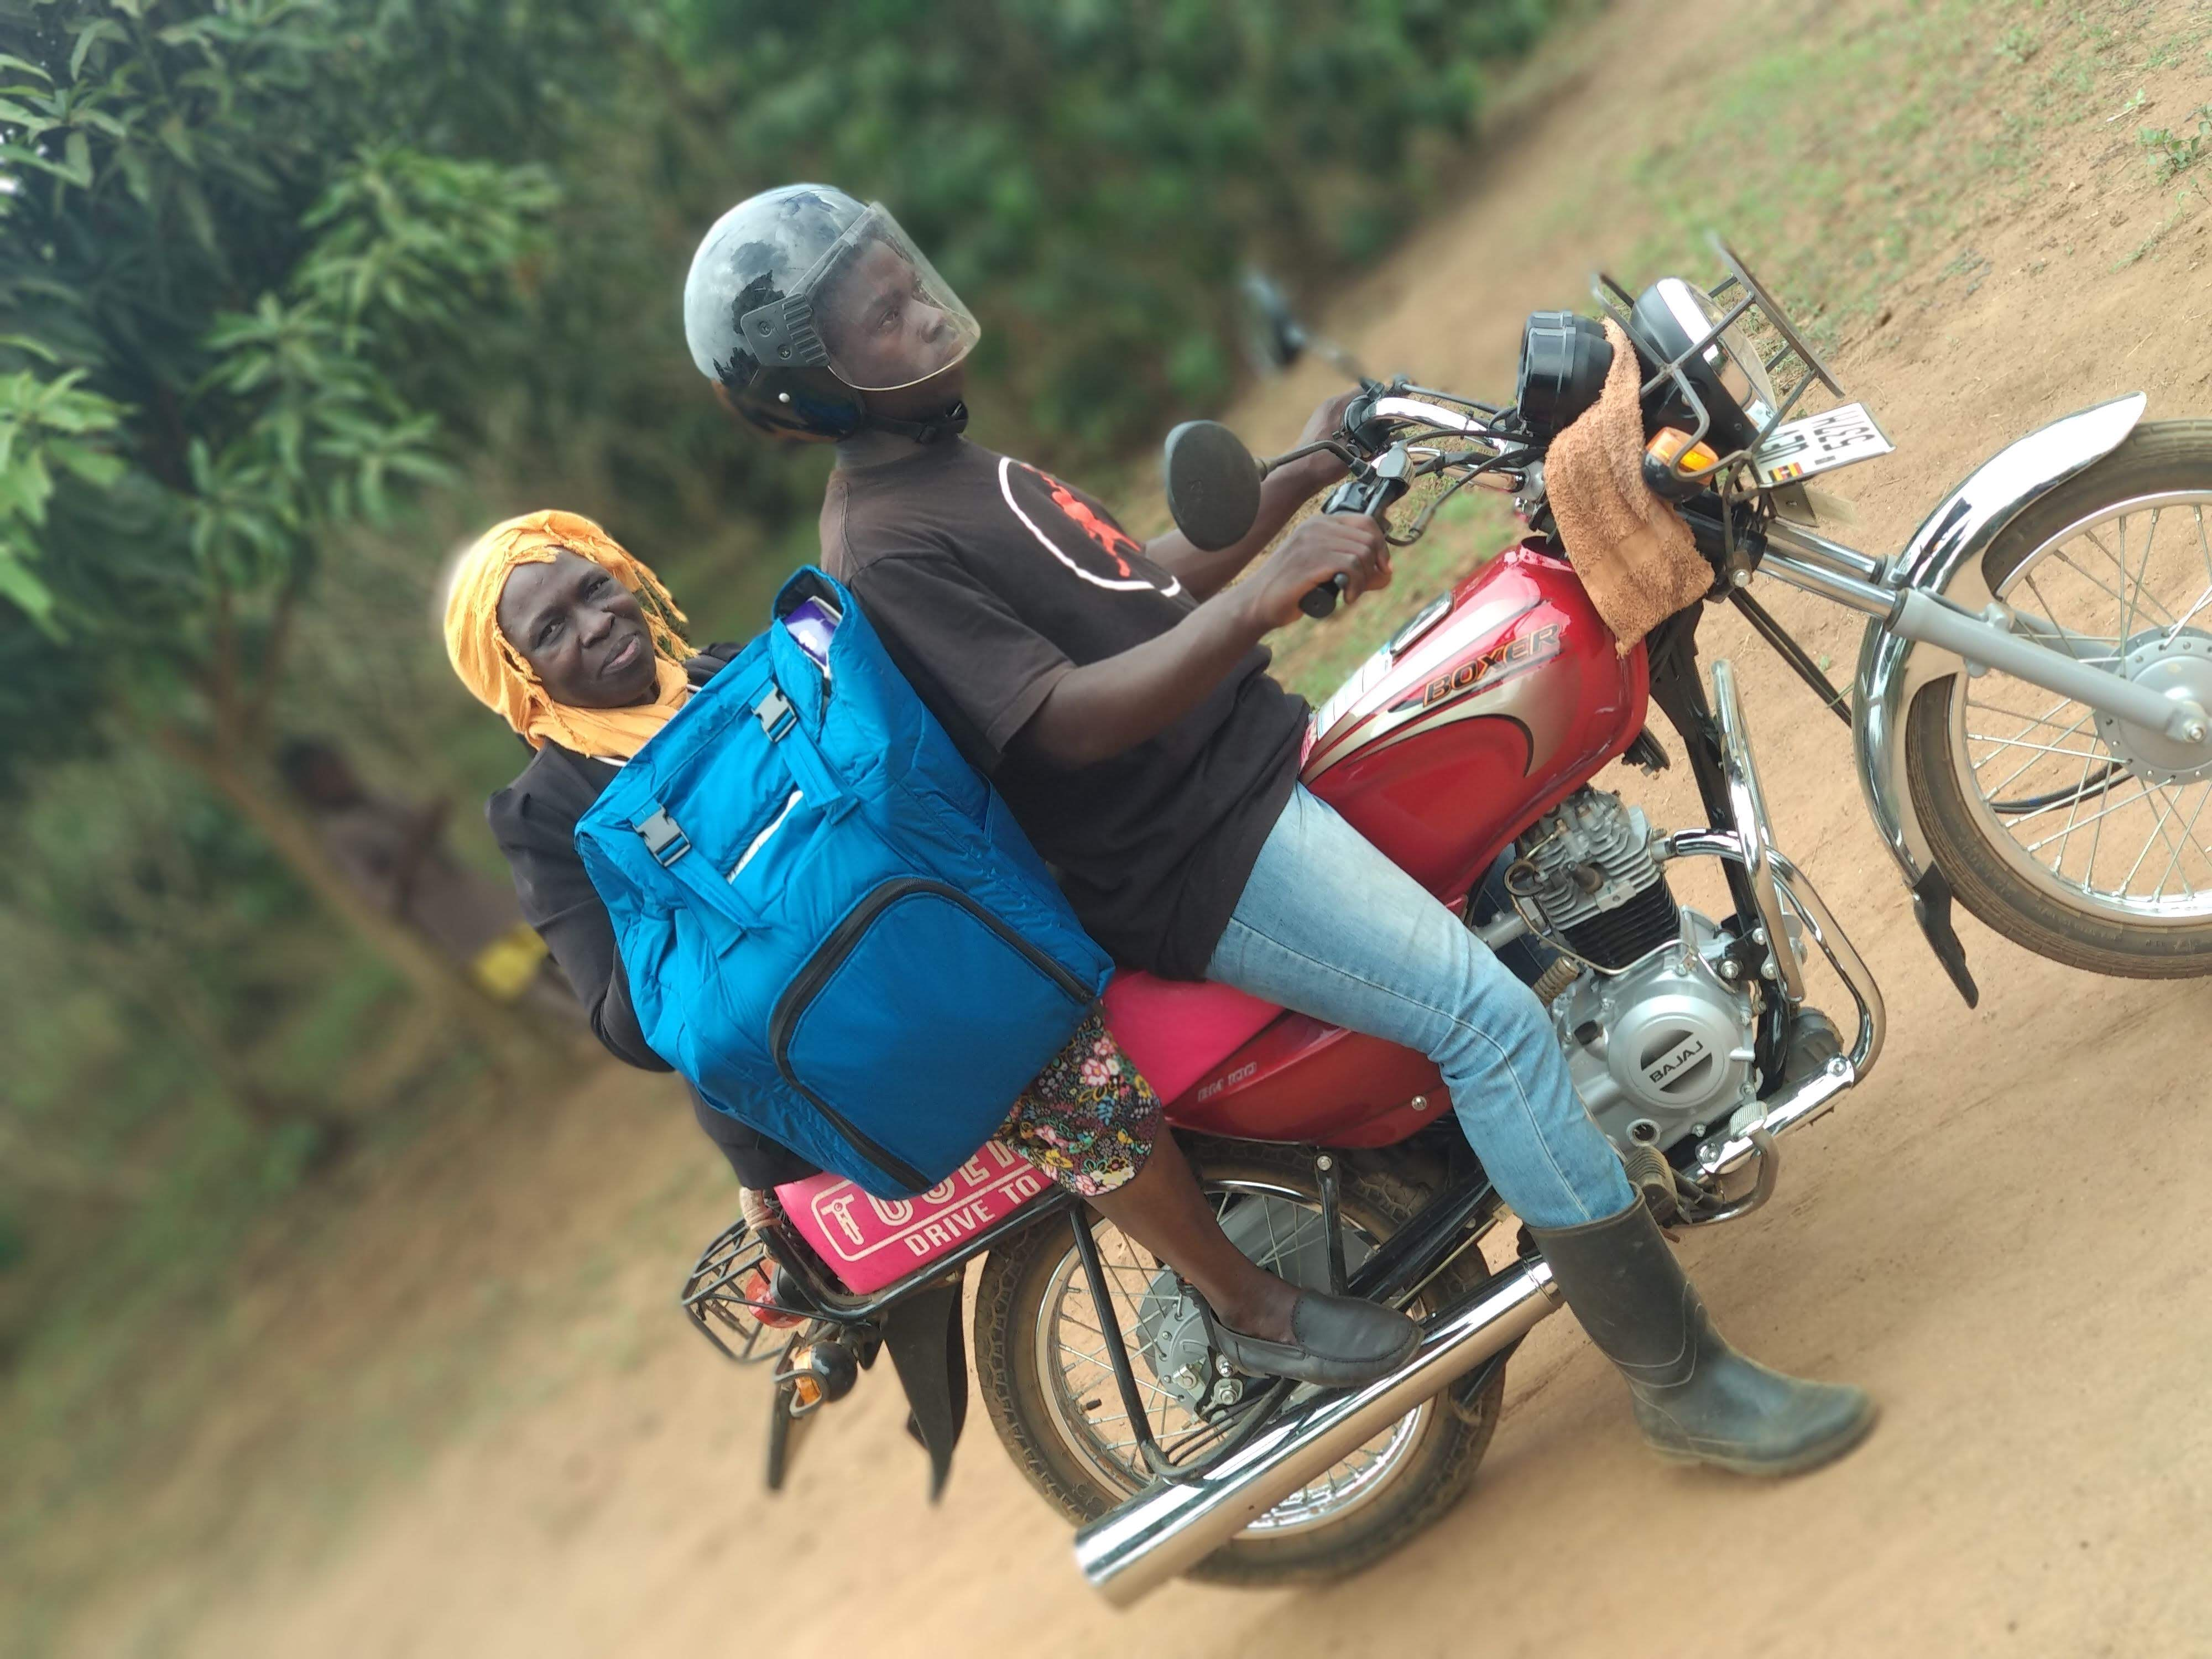 An African man and woman sit on a red motorcycle. the woman is carrying a blue backpack design to carry vaccines over long distances.